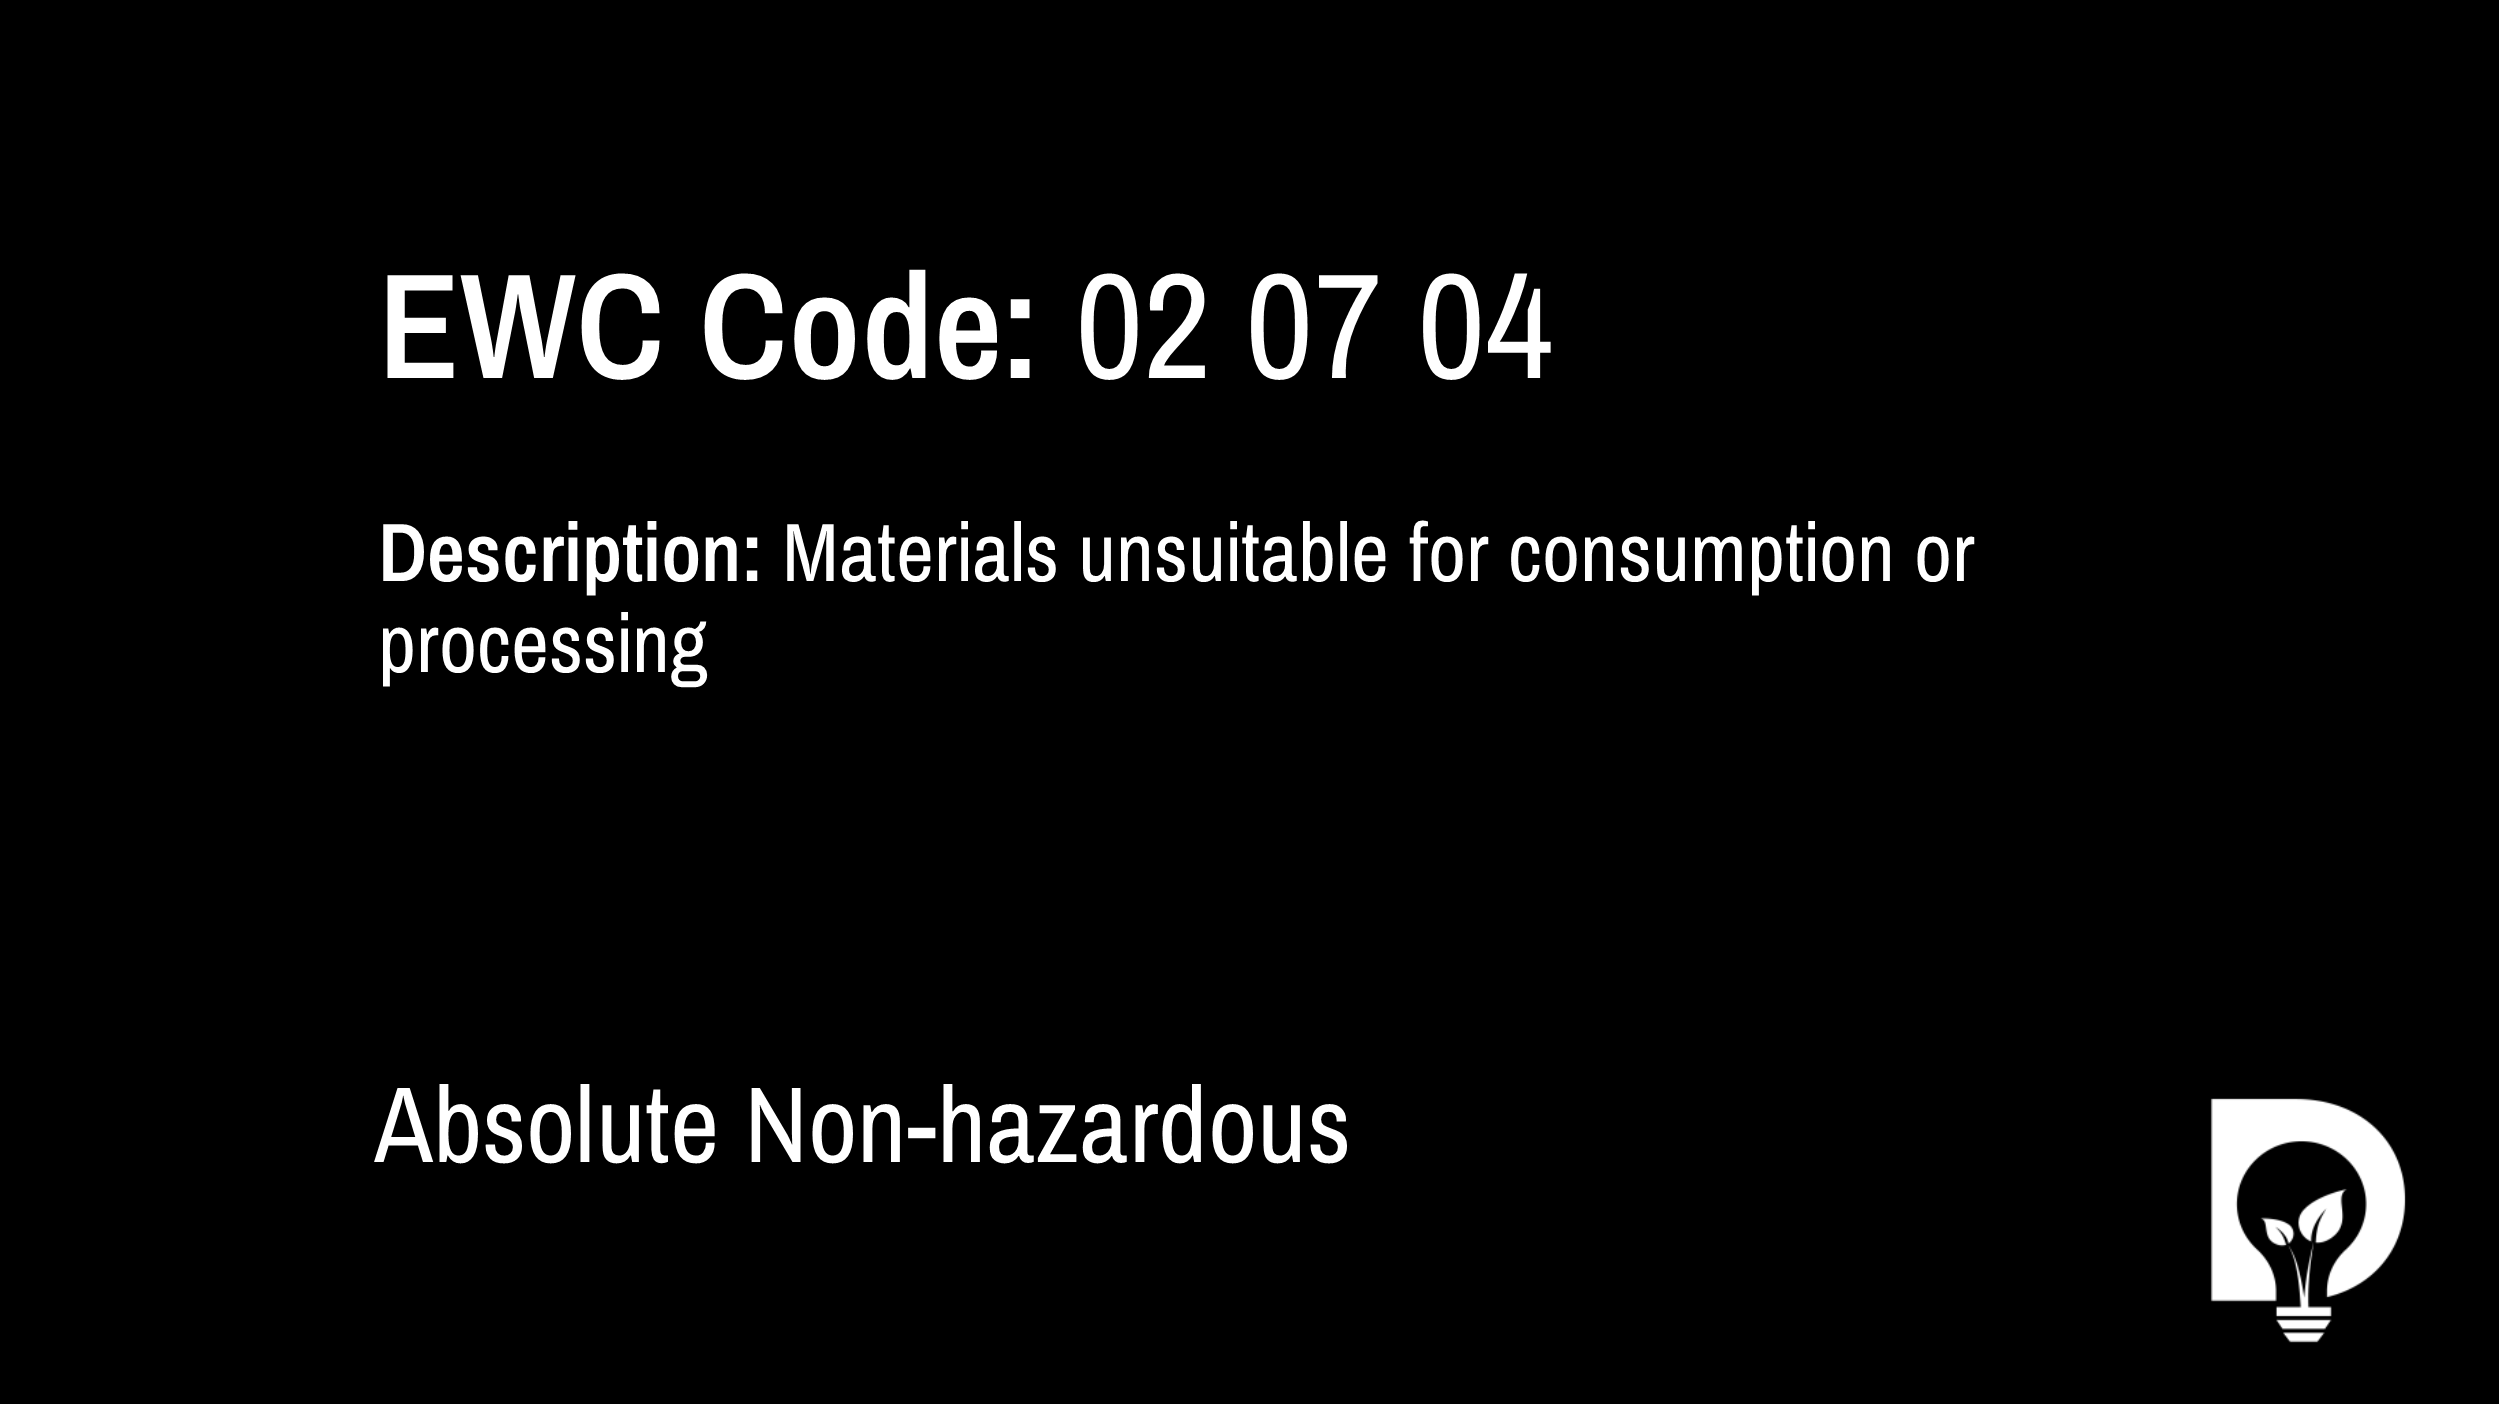 EWC Code: 02 07 04 - materials unsuitable for consumption or processing. Type: Absolute Non-hazardous. Image by Dsposal